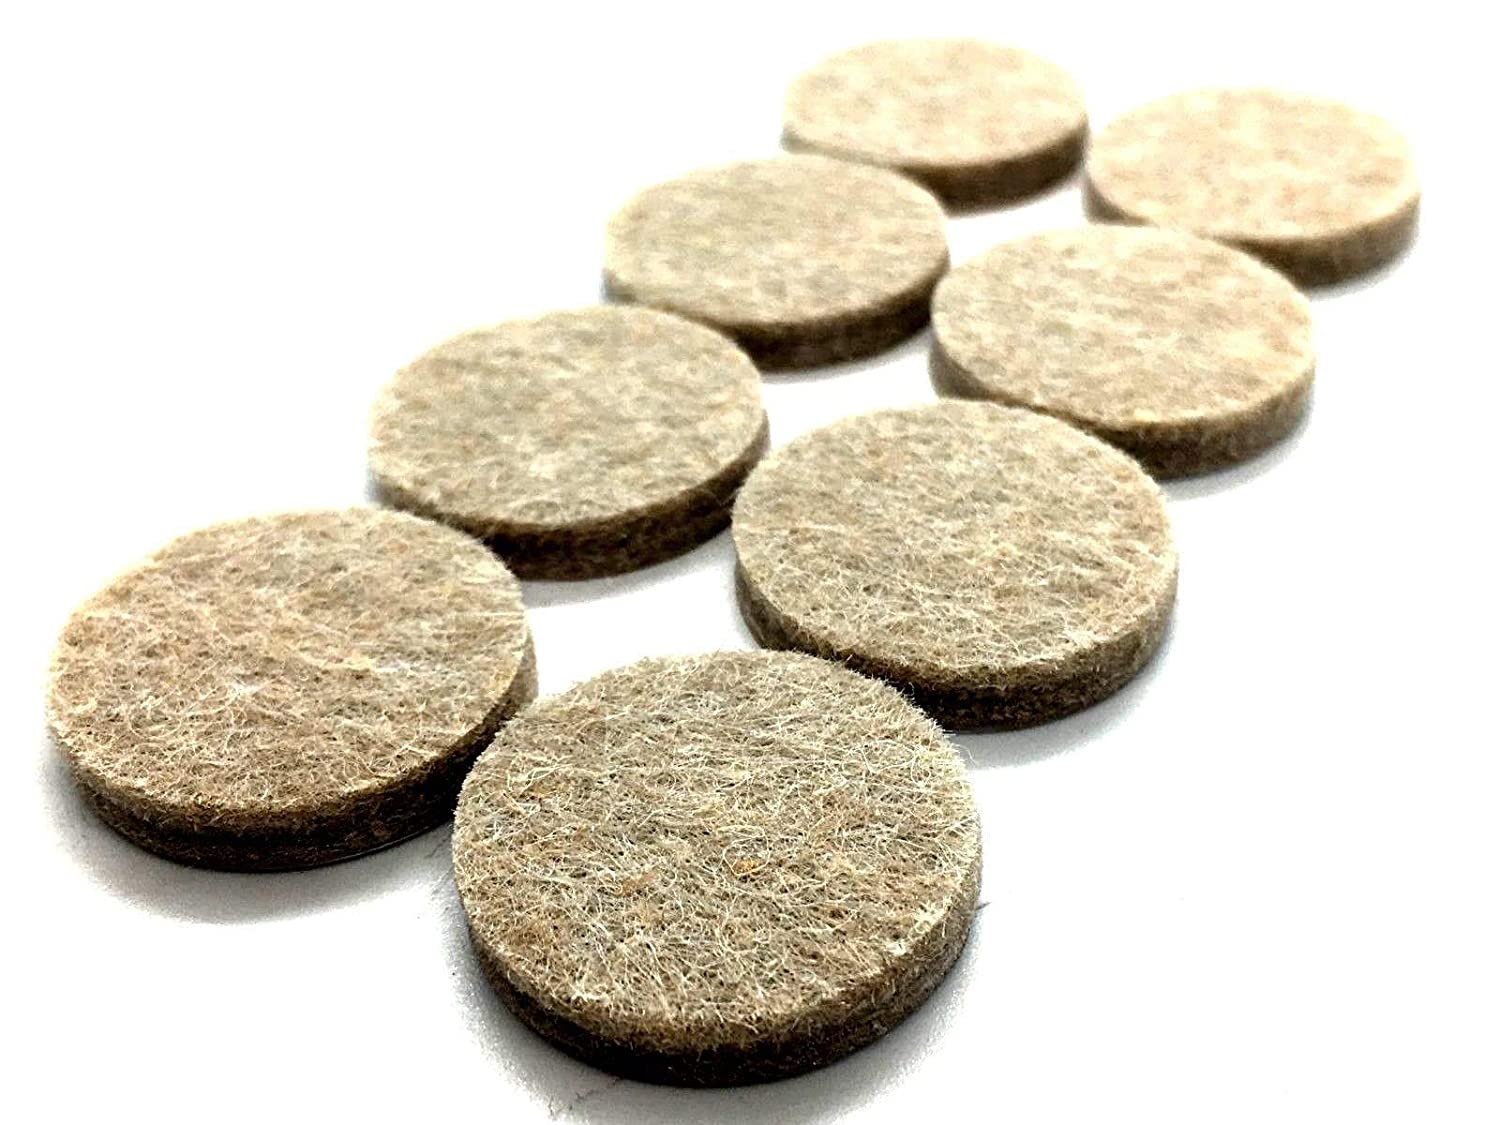 Swish Pack of 8 self adhesive Felt pads 25mm round furniture extra sticky protectors in beige.